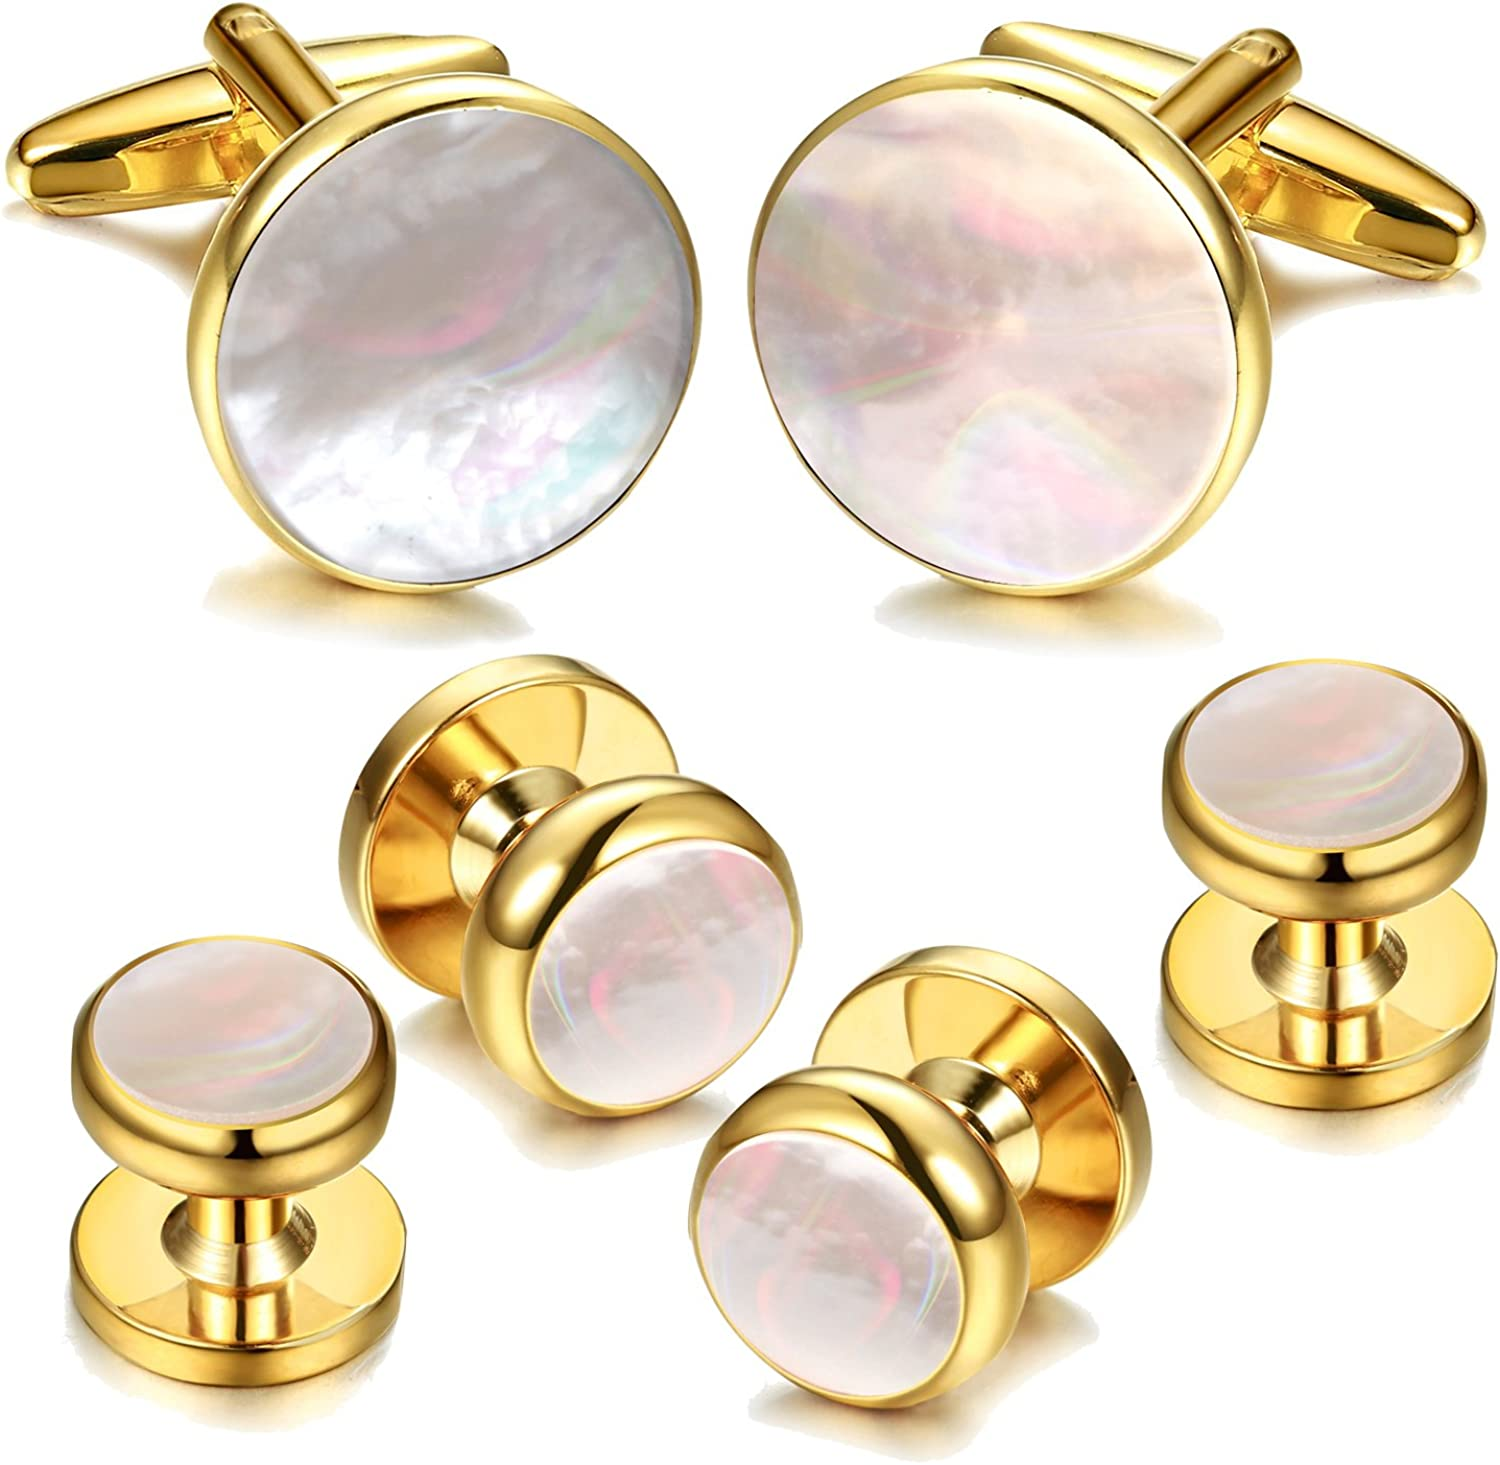 Digabi 6Pcs 18K Gold Plated Mother of Pearl Round Cufflinks and Shirt Stud Set Tuxedo Studs for Shirts